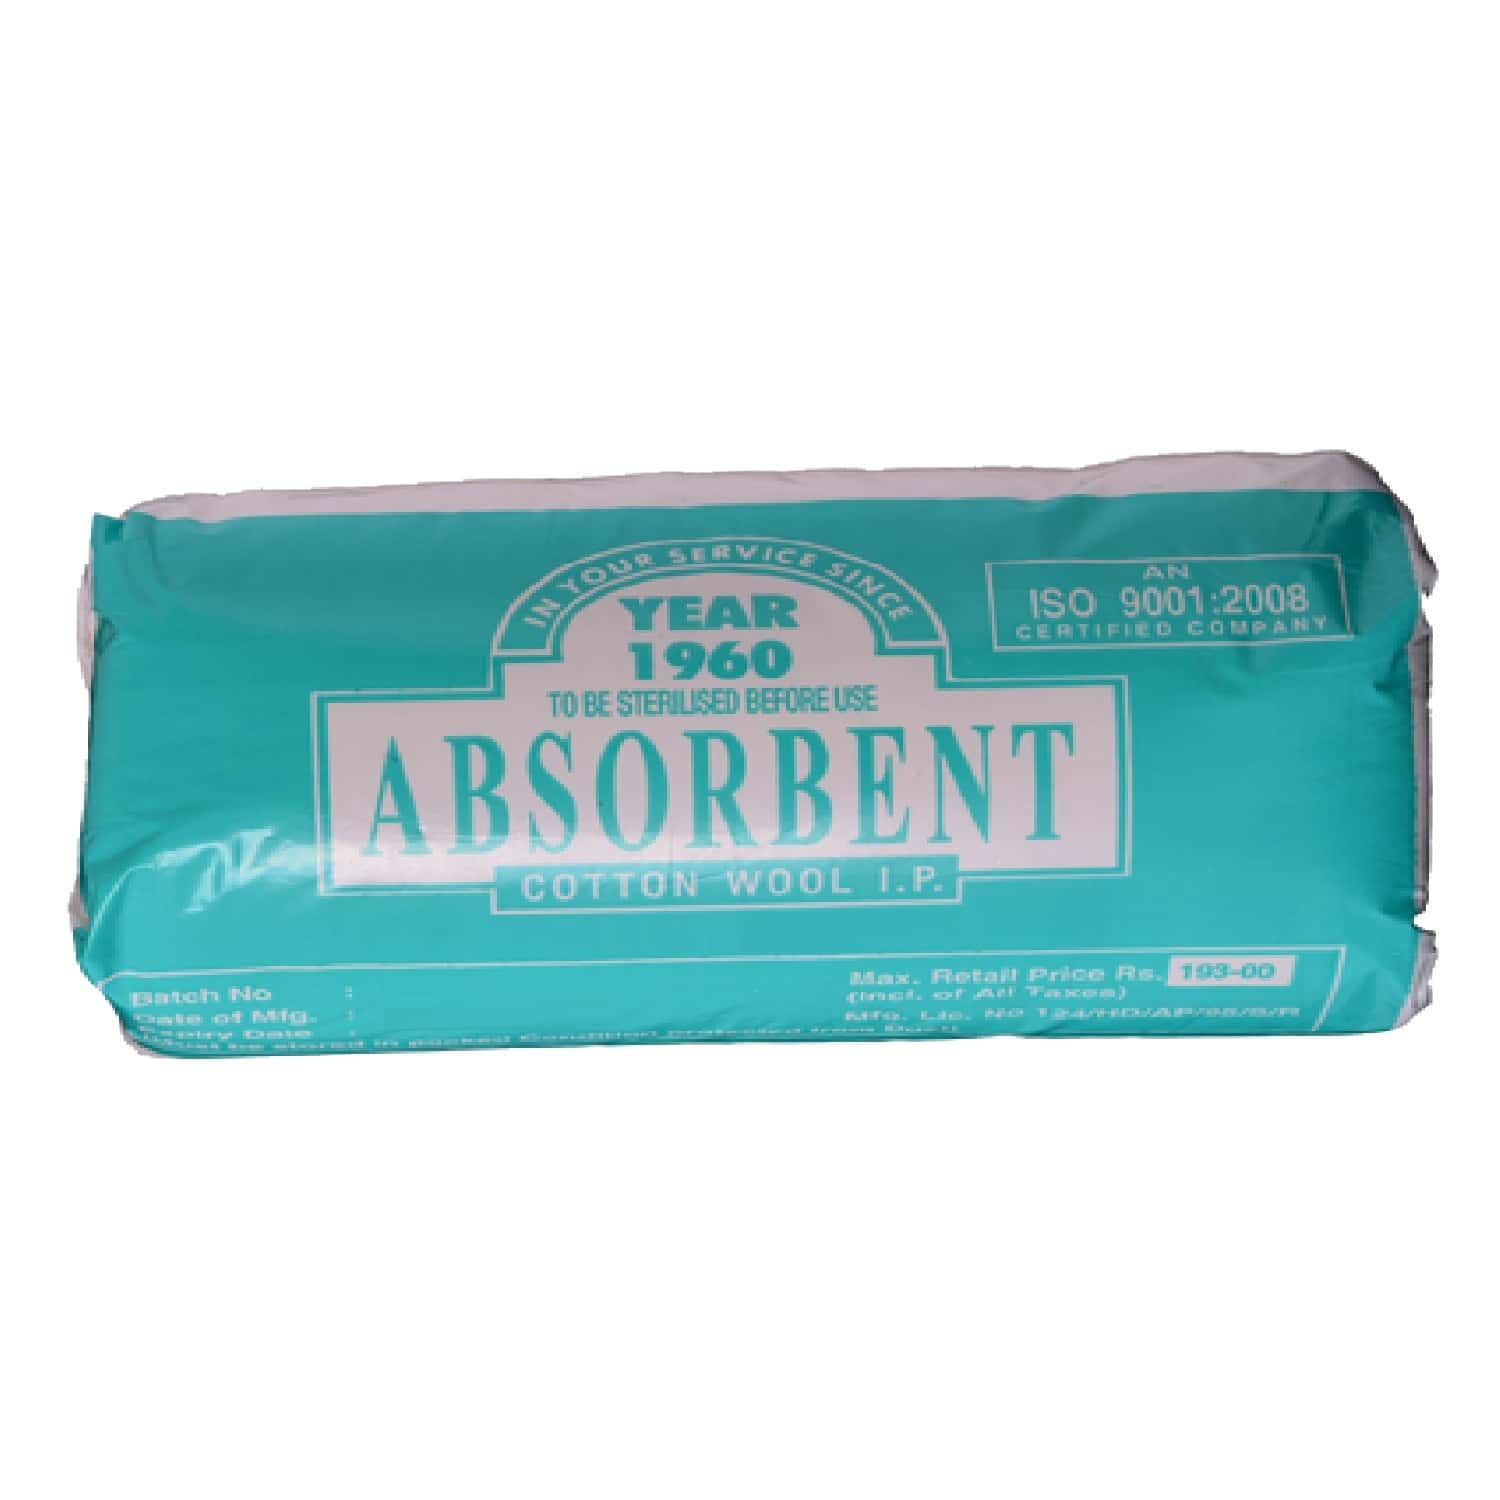 Absorbent Cotton Wool By Jaycot 400 Gm